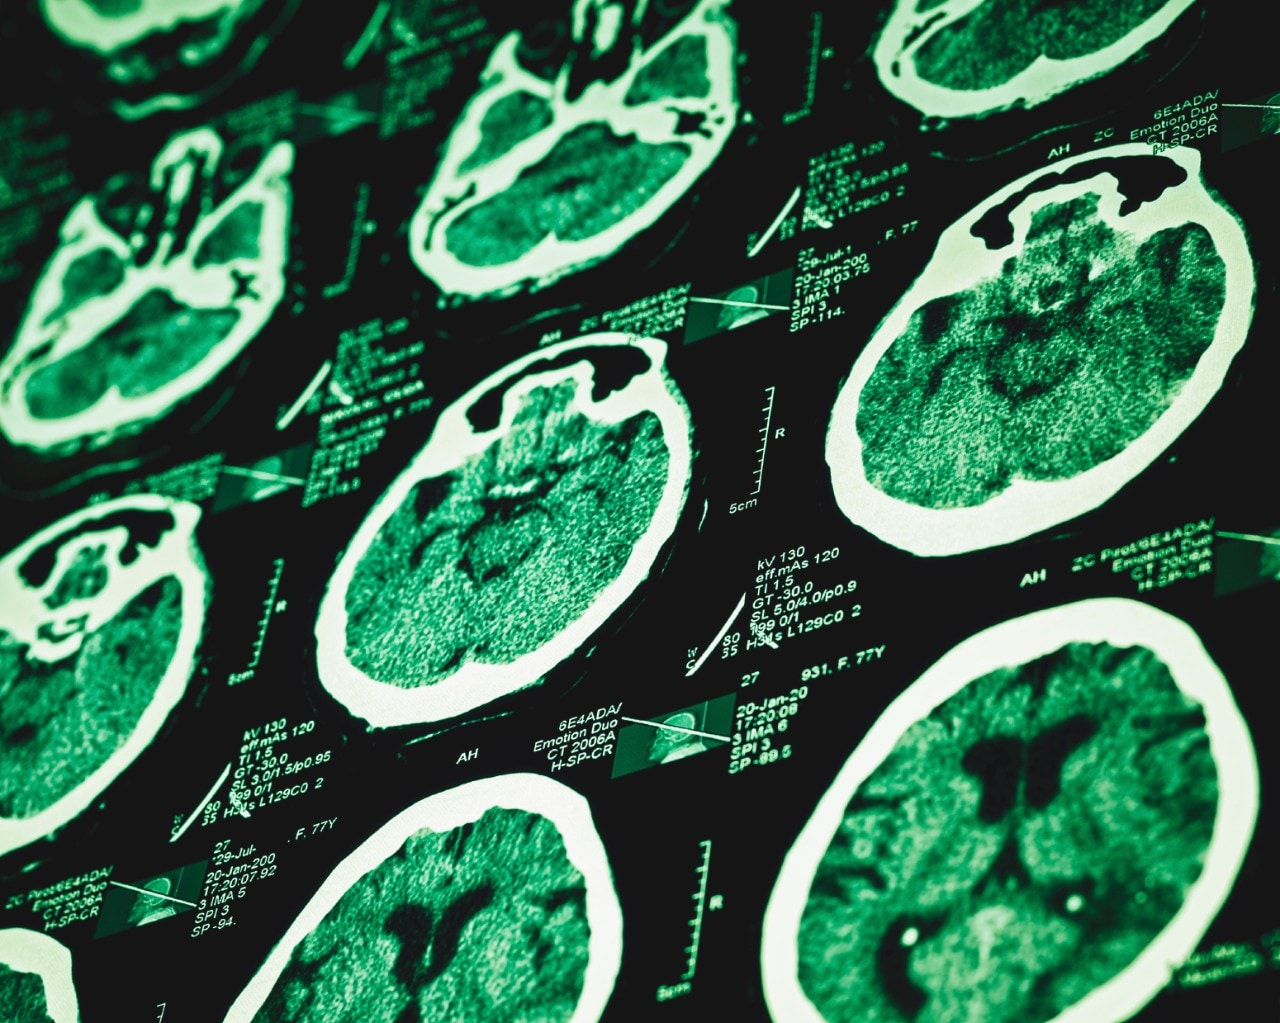 Imaging Study Confirms Differences In Adhd Brains The University Of Sydney